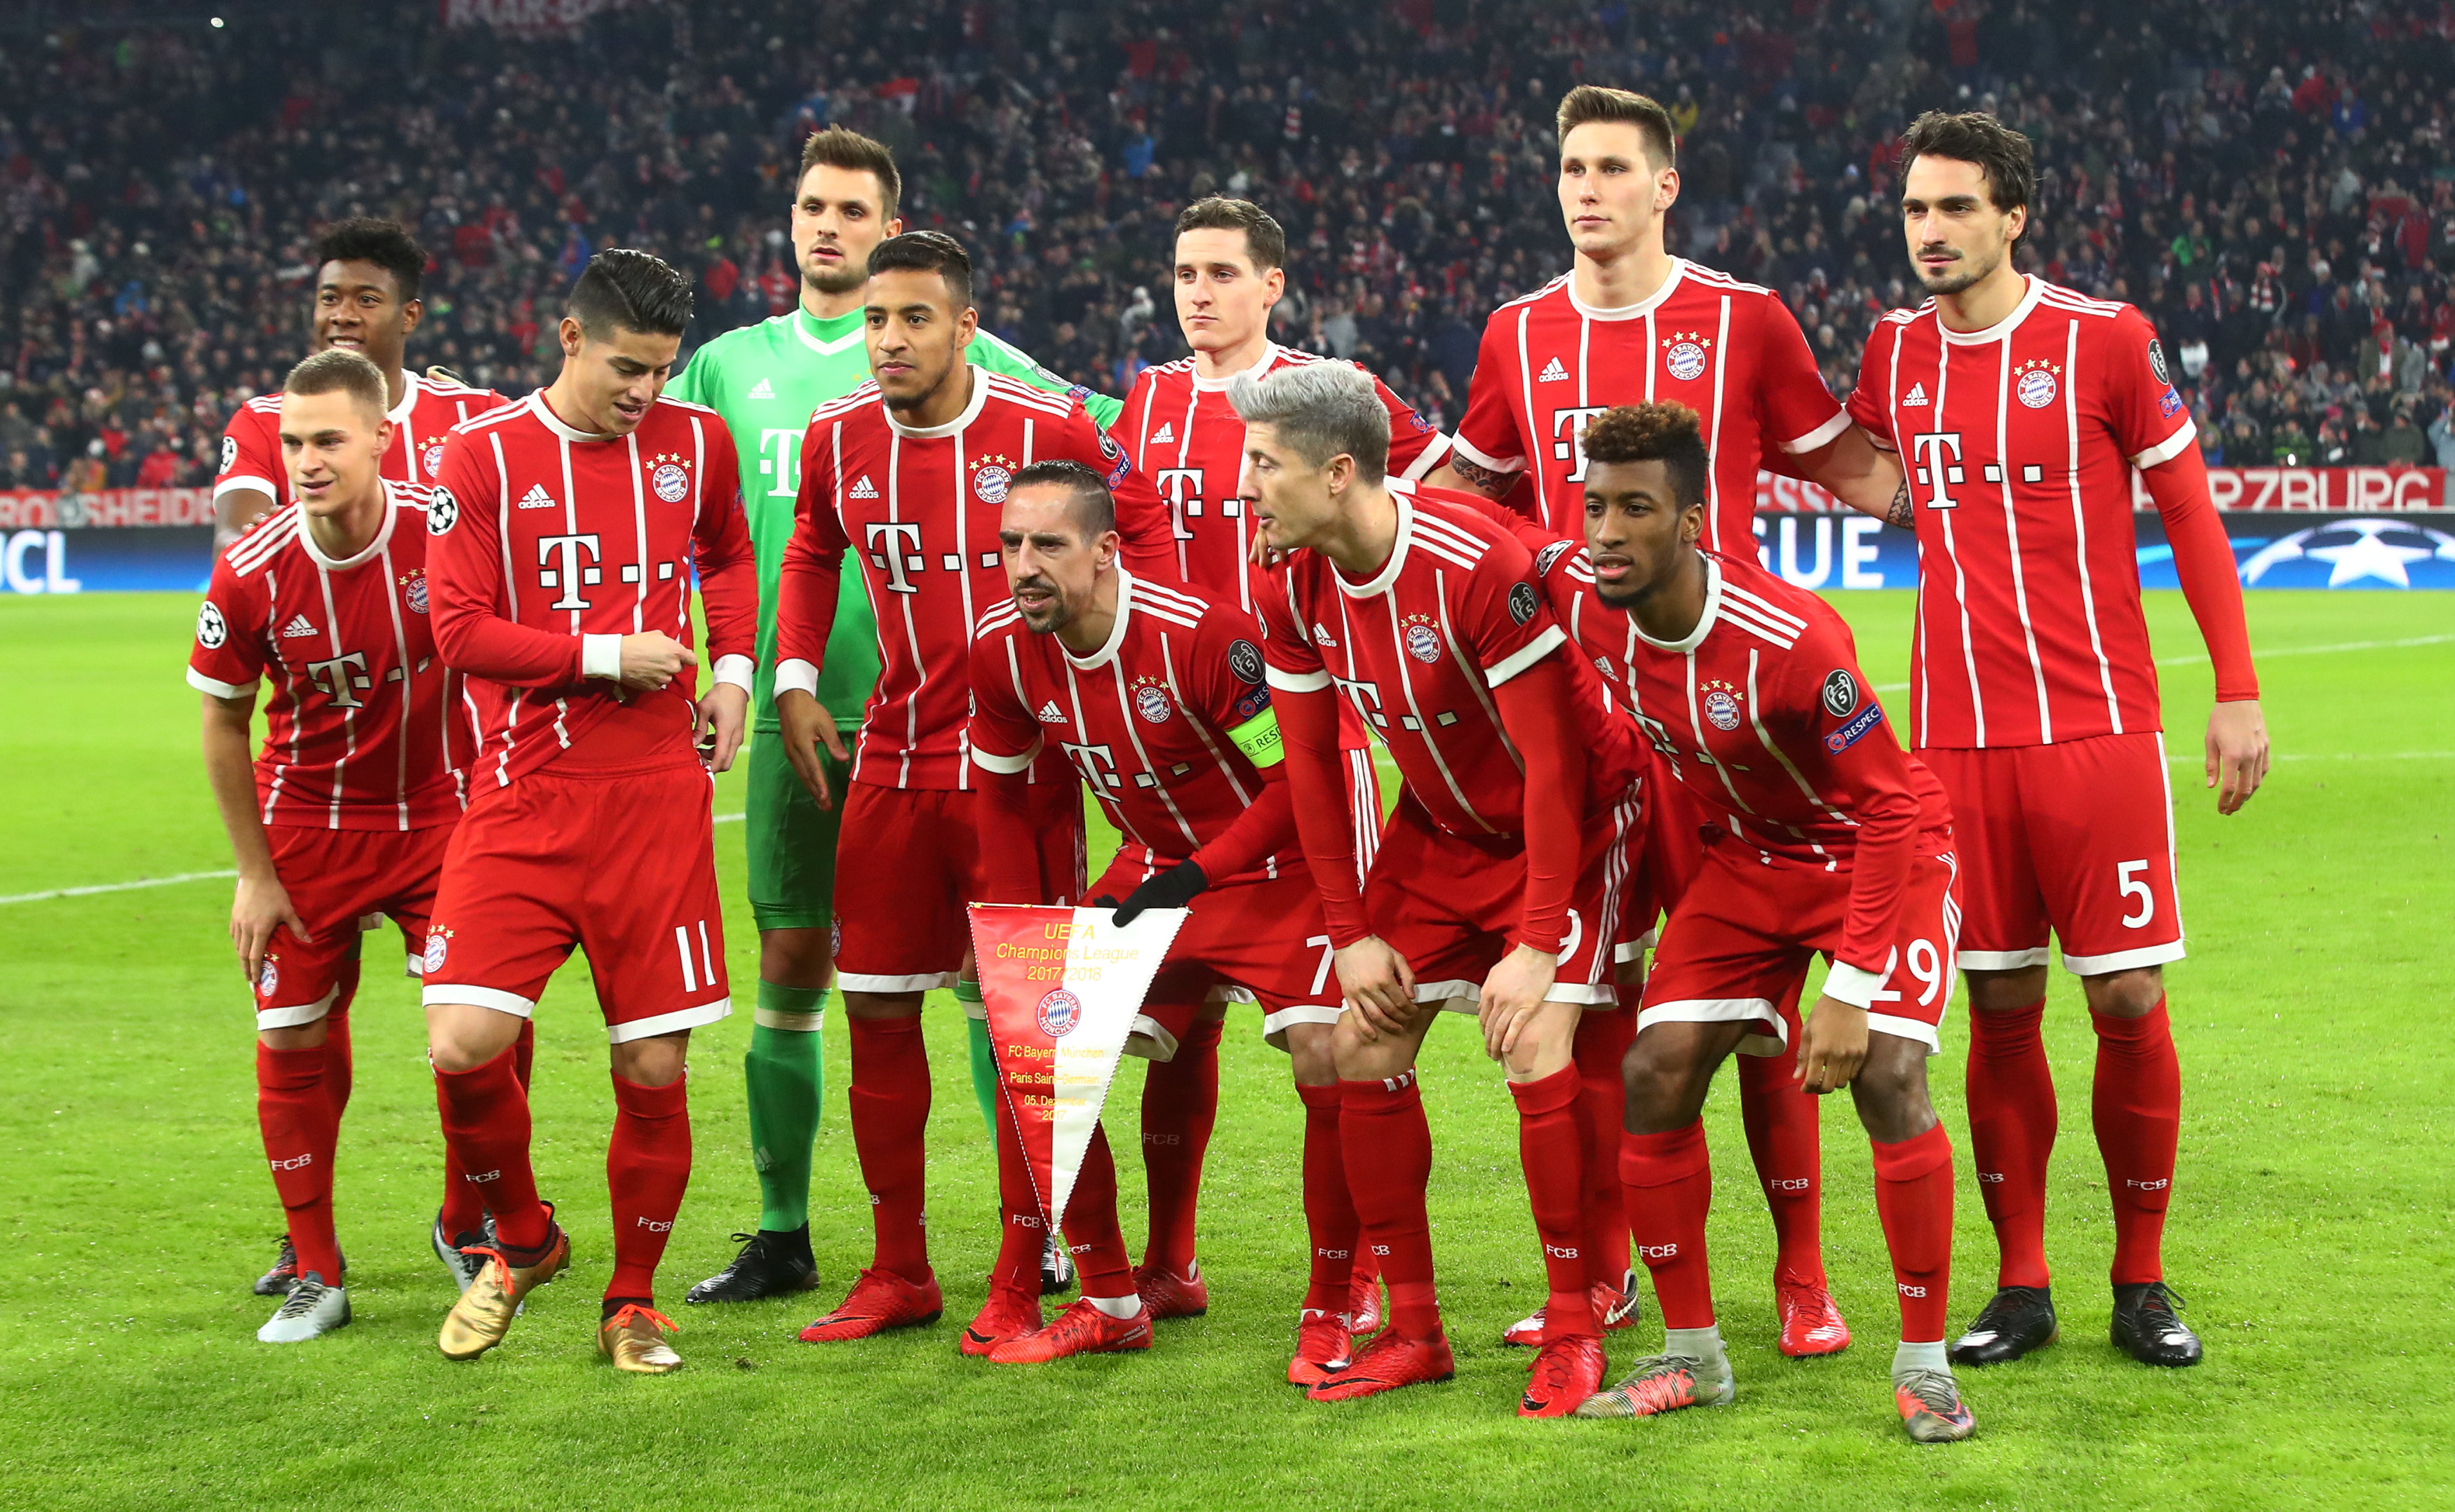 FC Bayern Munich Players Salaries 2018 (Weekly Wages) on inter milan, england national football team, brazil national football team, pep guardiola, borussia dortmund, germany munchen, germany national football team, sevilla fc, a.c. milan, uefa champions league, barca munchen, allianz arena, james rodríguez, argentina national football team, atlético madrid, rb leipzig, fcbayern munchen, paulaner munchen, fc porto, david alaba, fc barcelona,